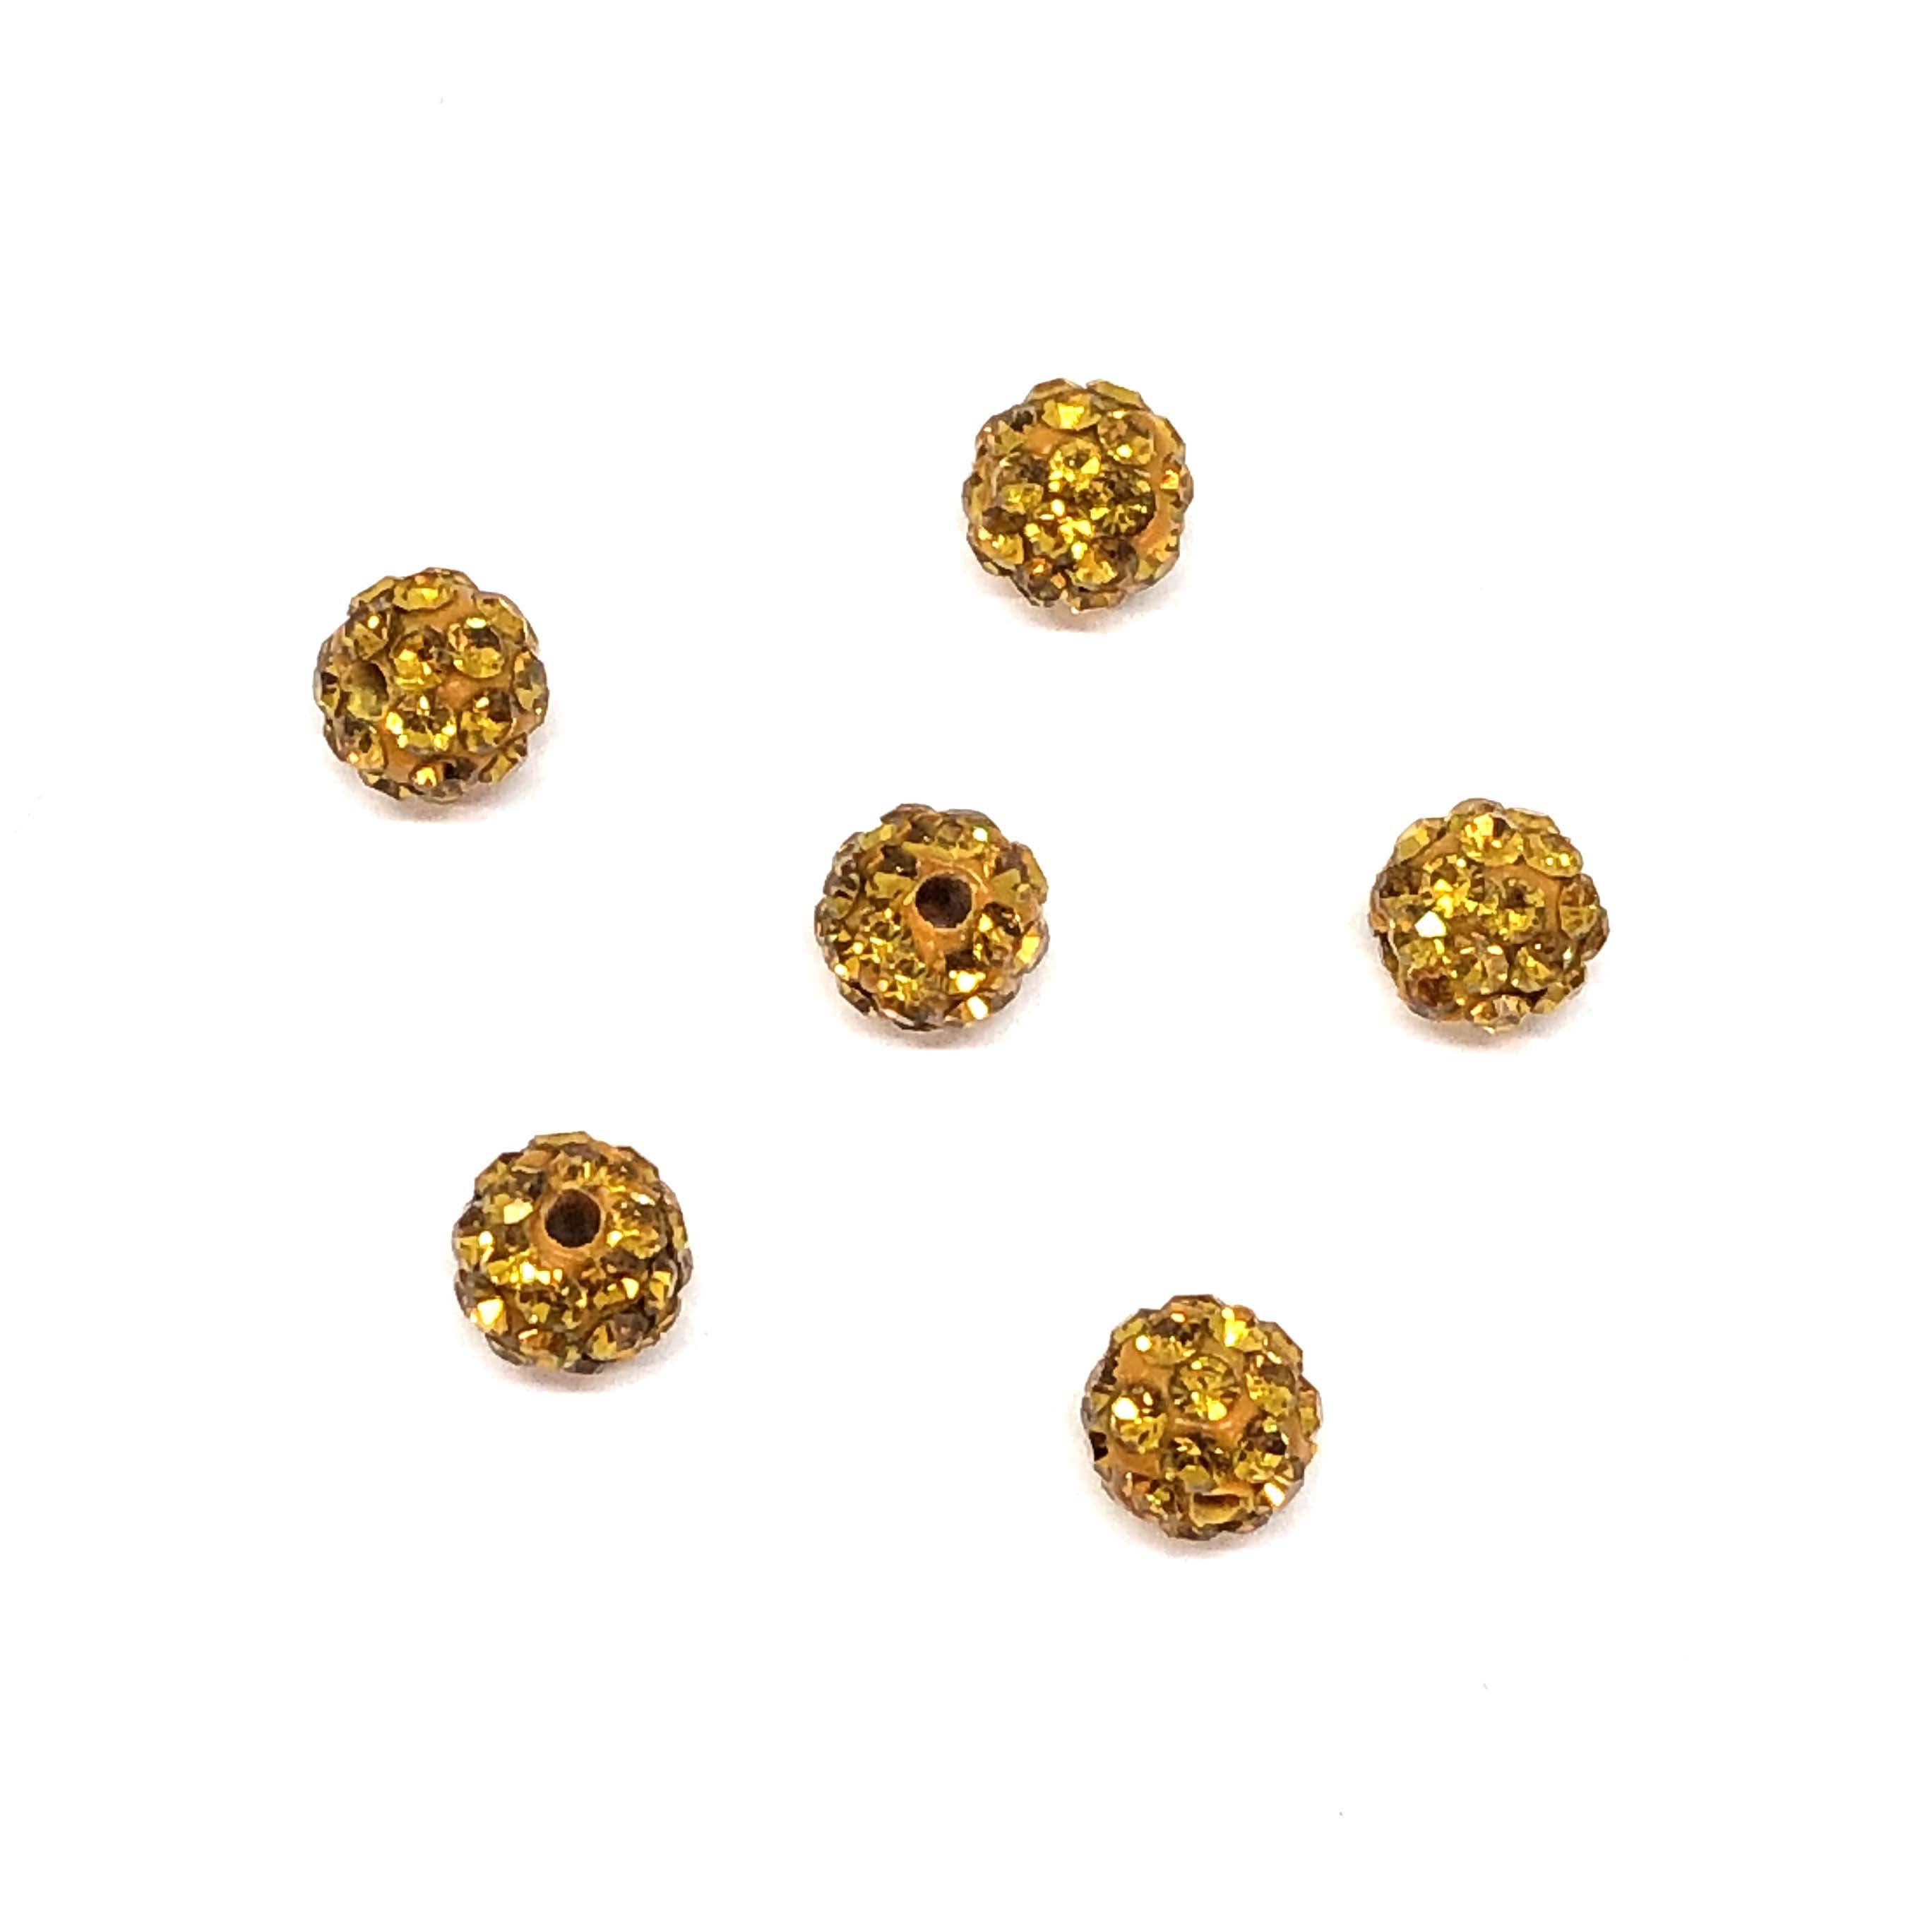 Rhinestone Pave Beads, Topaz Beads, 6mm, 0672, ball beads, glass beads, crystal stones, round beads, crystal beads, faceted, bead, glass, b'sue boutiques, jewelry making, jewelry findings, vintage supplies, yellow, yellow beads